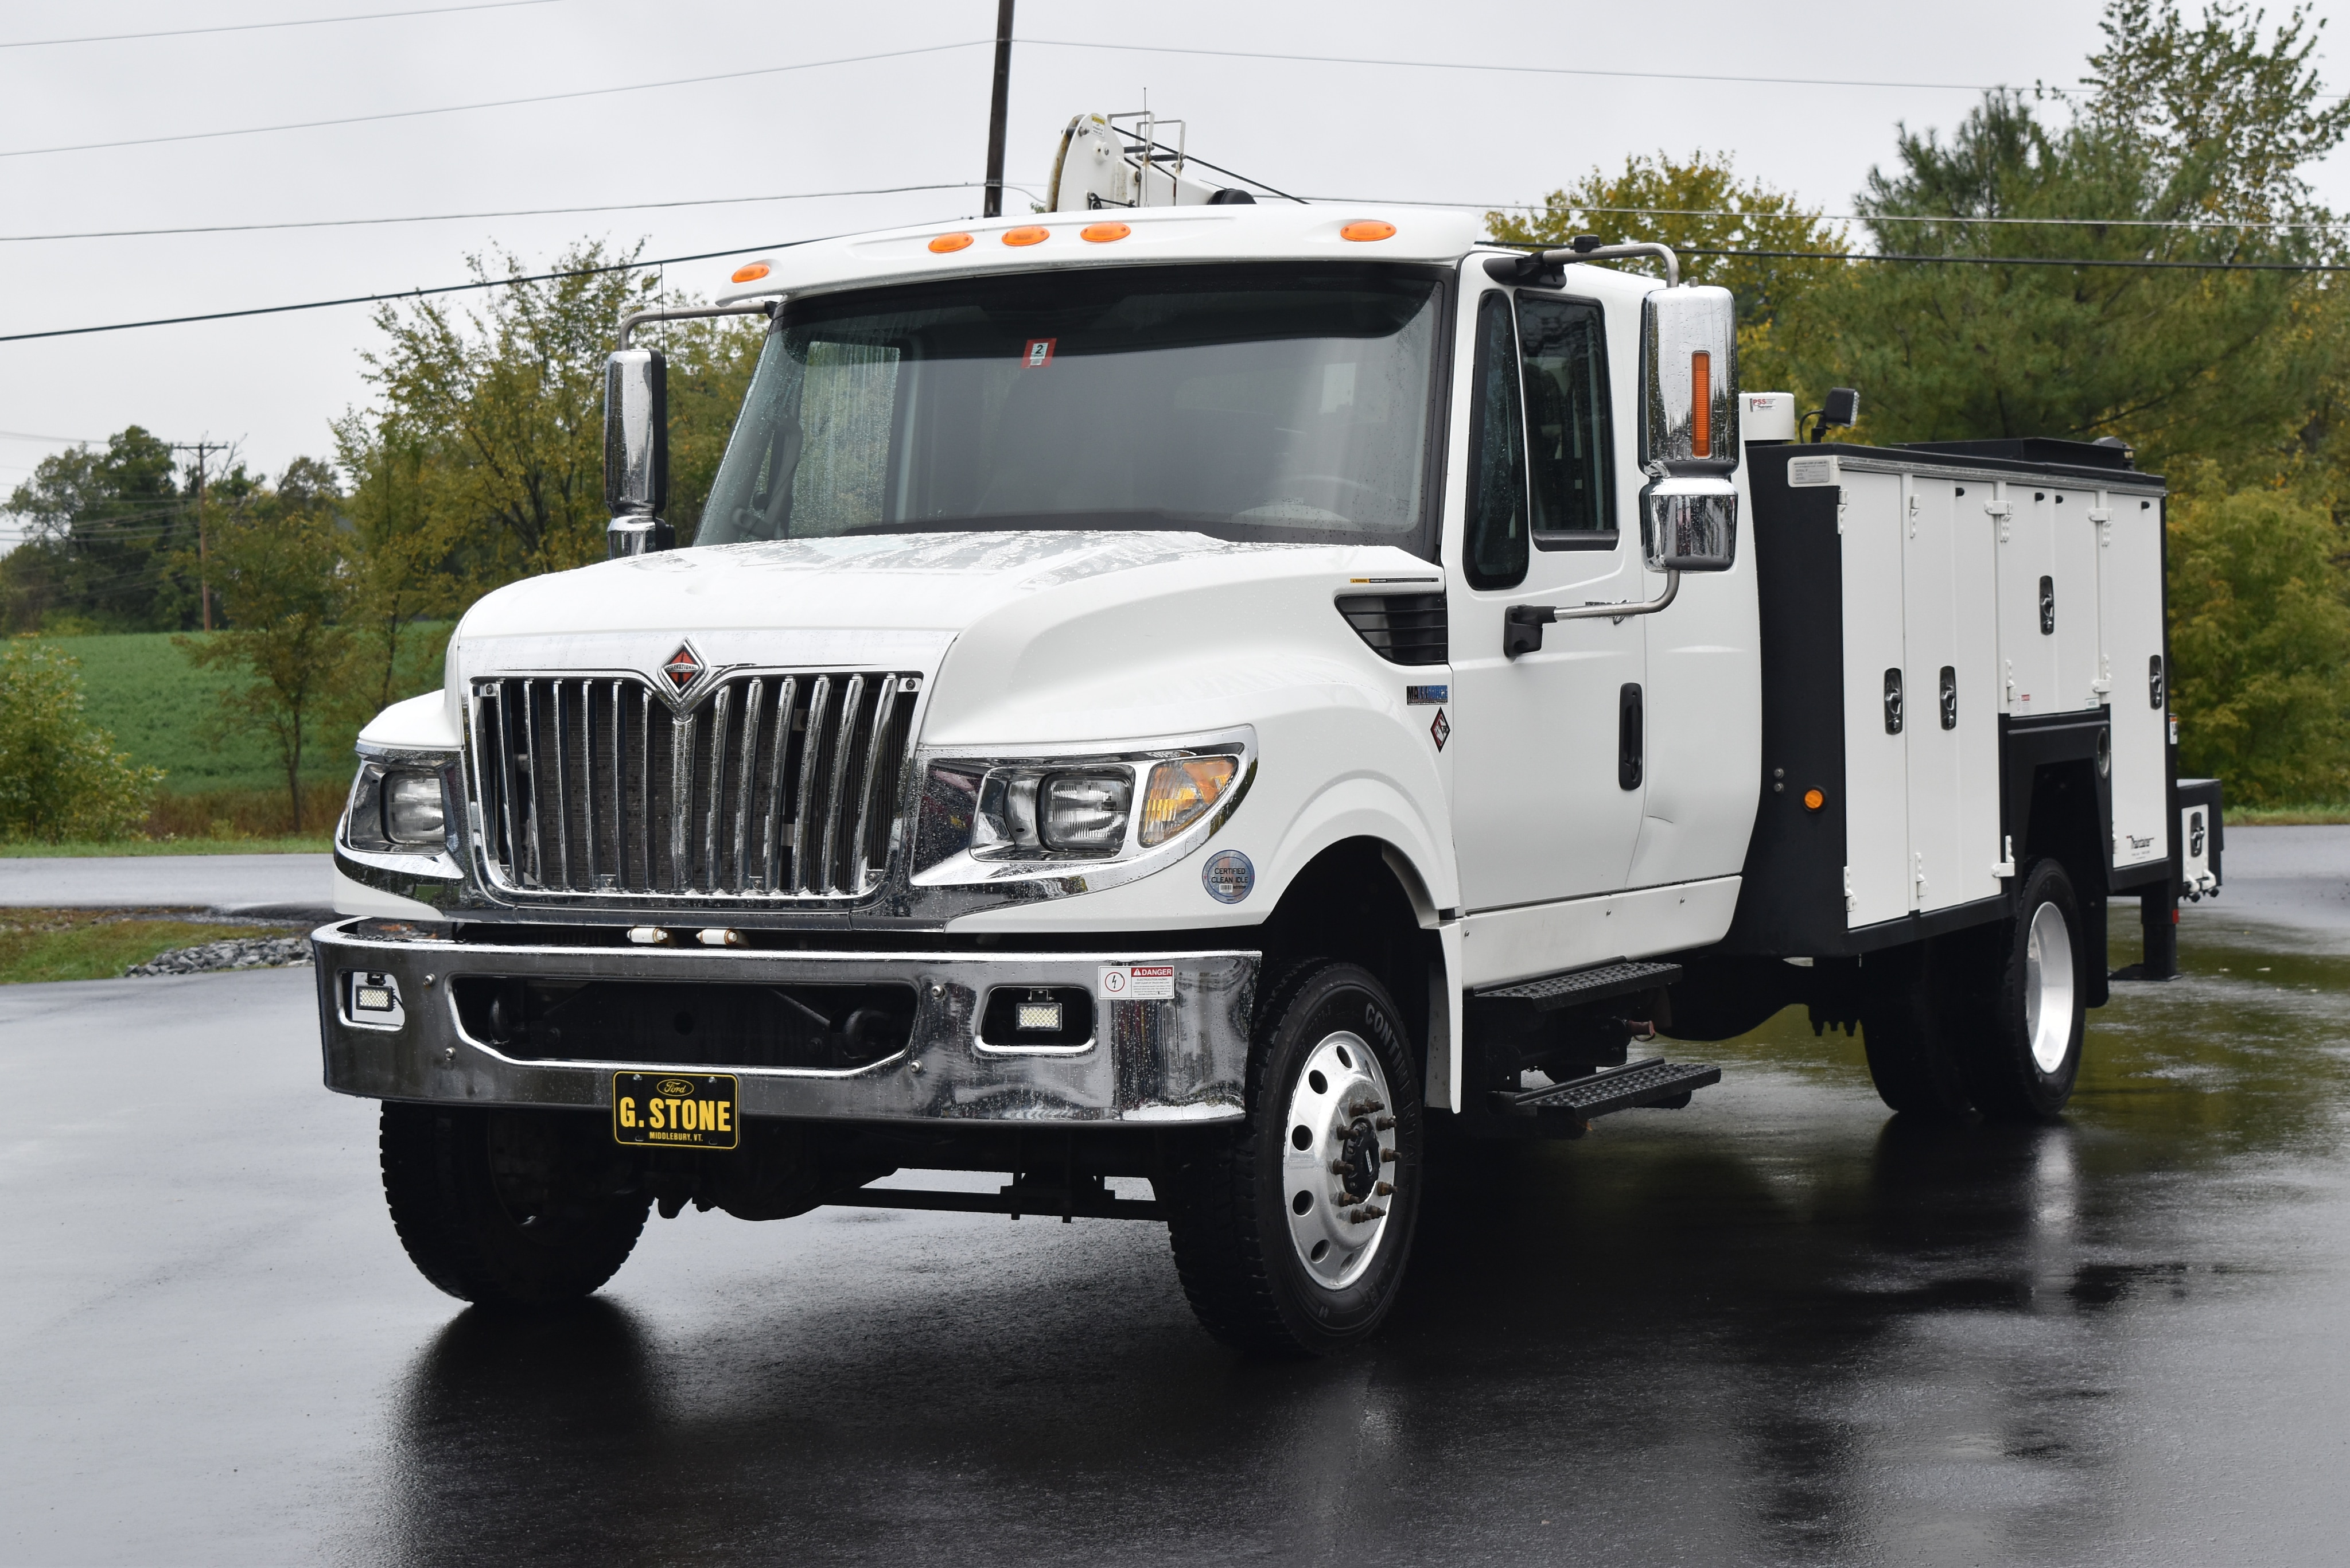 2014 International Terrastar Maintainer Service Truck With Crane Cab and Chassis